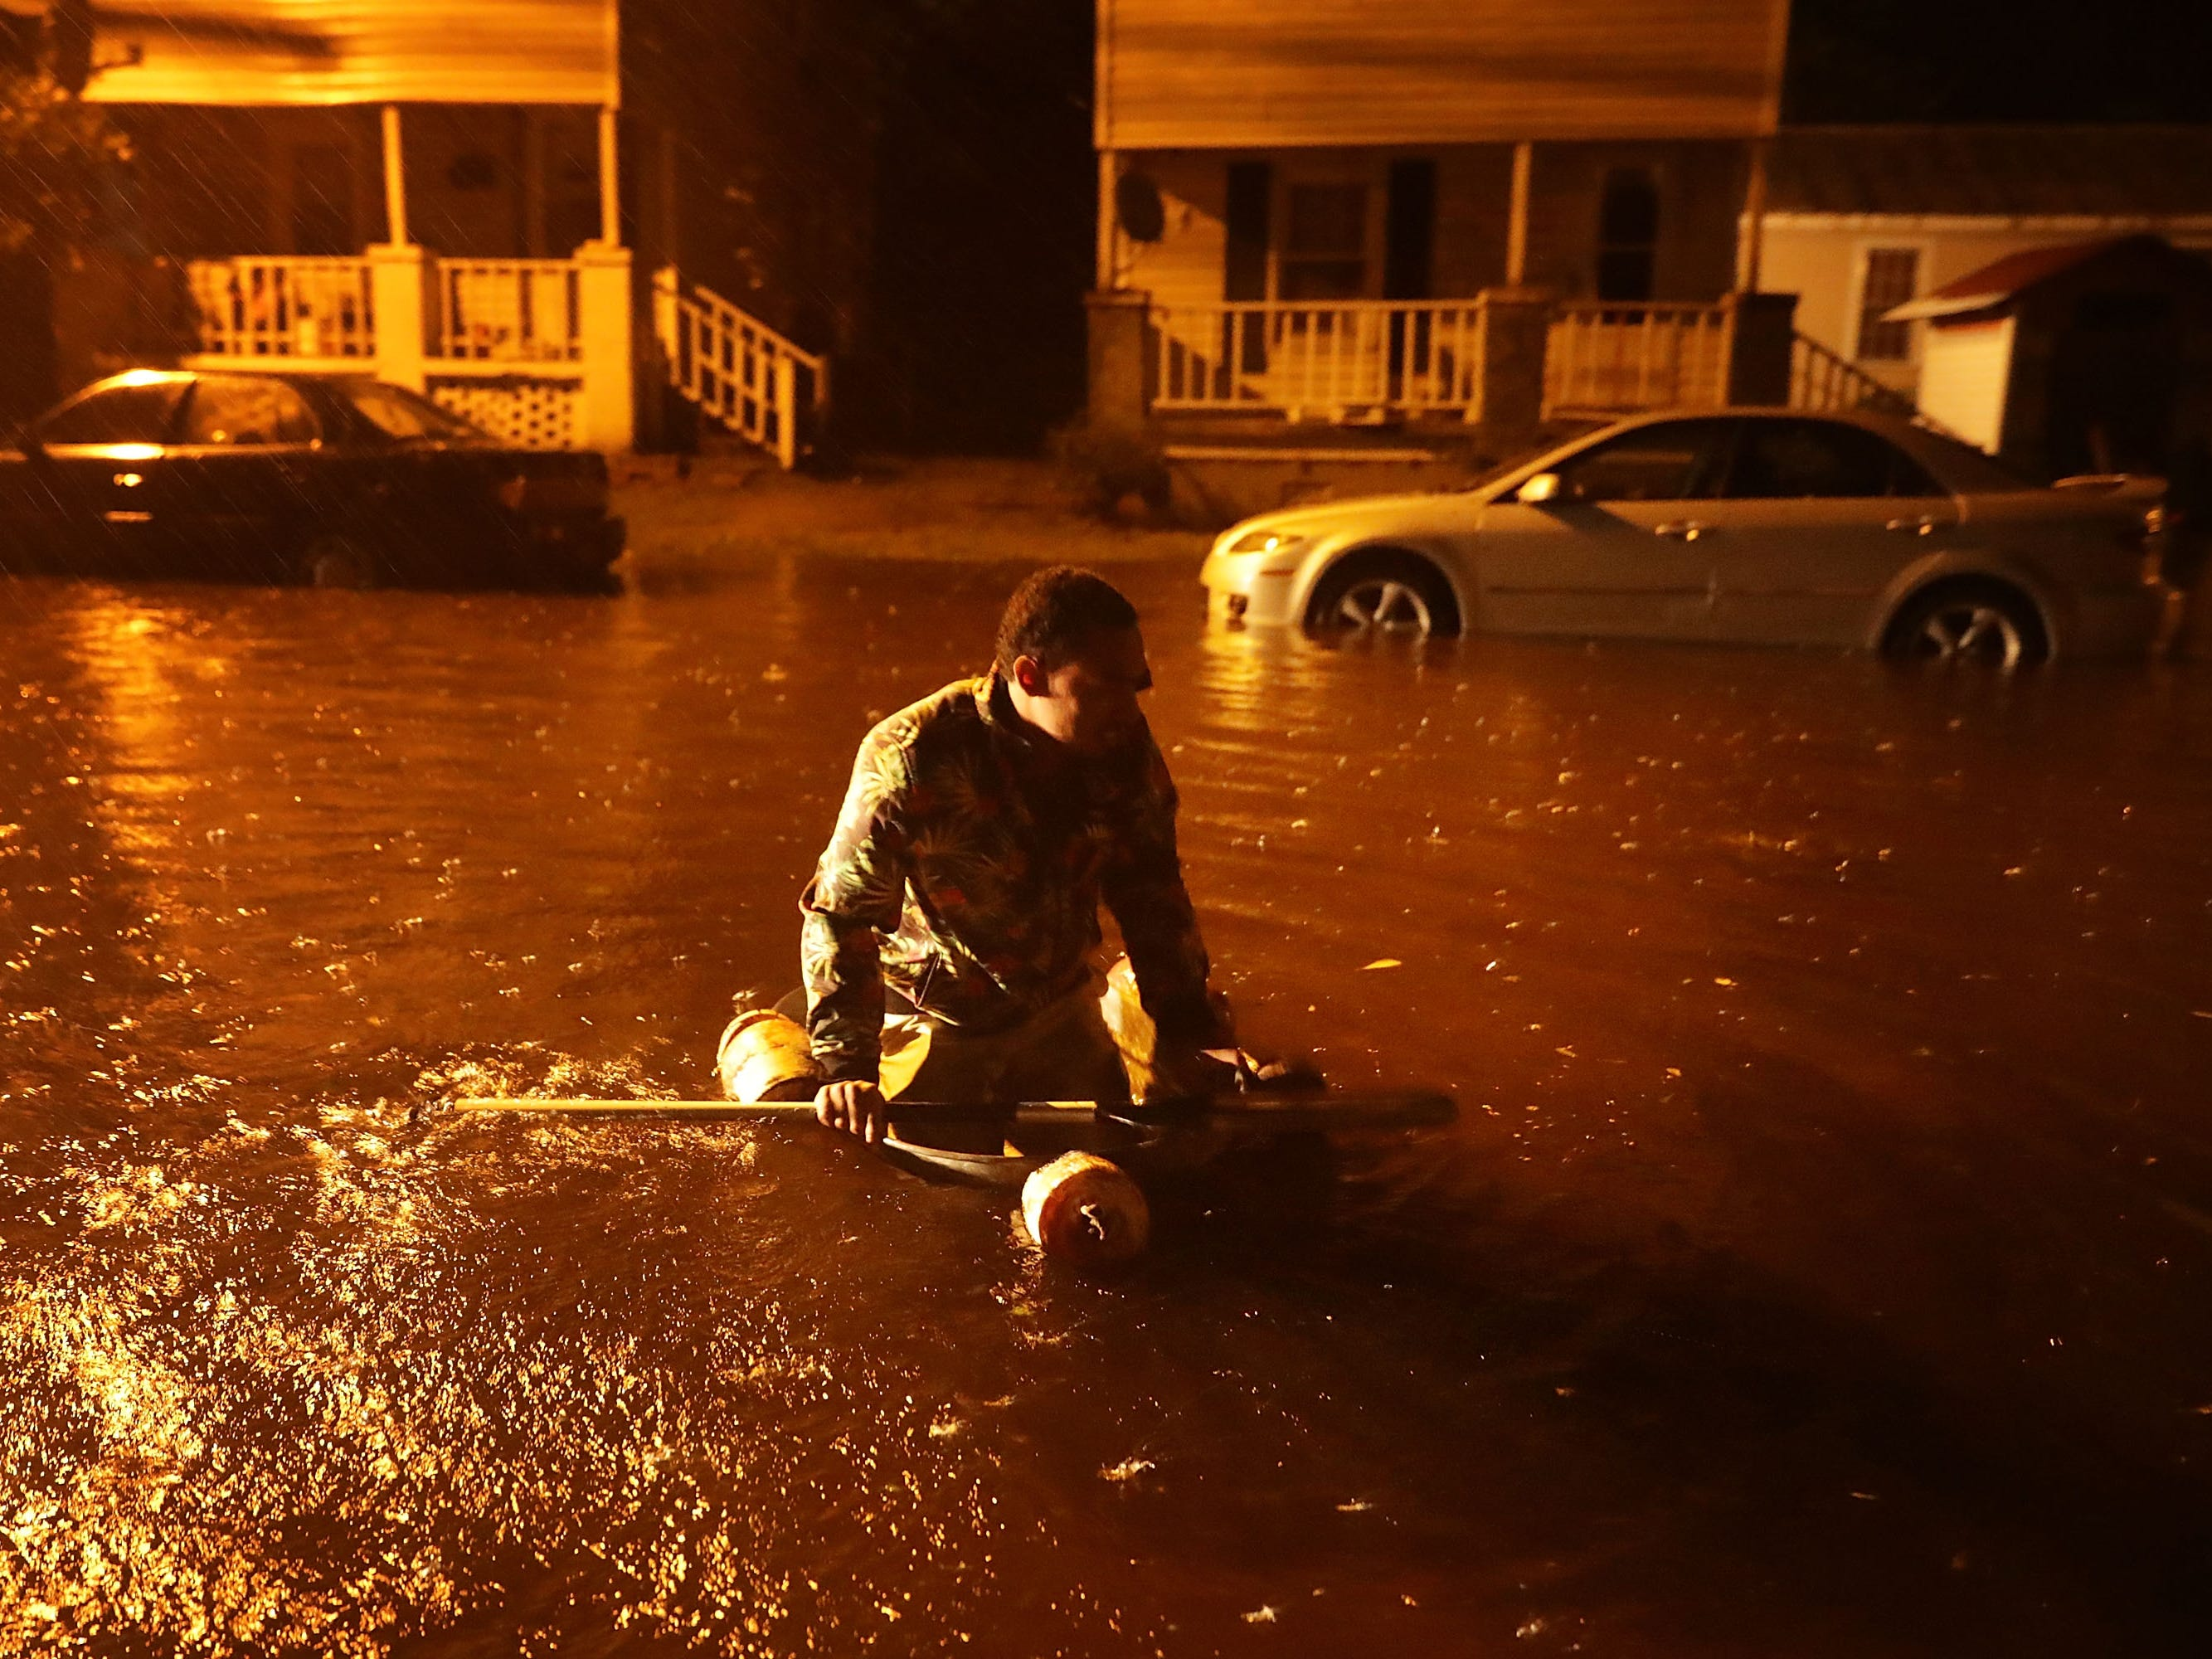 NEW BERN, NC - SEPTEMBER 13:  Michael Nelson floats in a boat made from a metal tub and fishing floats after the Neuse River went over its banks and flooded his street during Hurricane Florence September 13, 2018 in New Bern, North Carolina. Some parts of New Bern could be flooded with a possible 9-foot storm surge as the Category 2 hurricane approaches the United States.  (Photo by Chip Somodevilla/Getty Images) *** BESTPIX *** ORG XMIT: 775225768 ORIG FILE ID: 1032932662